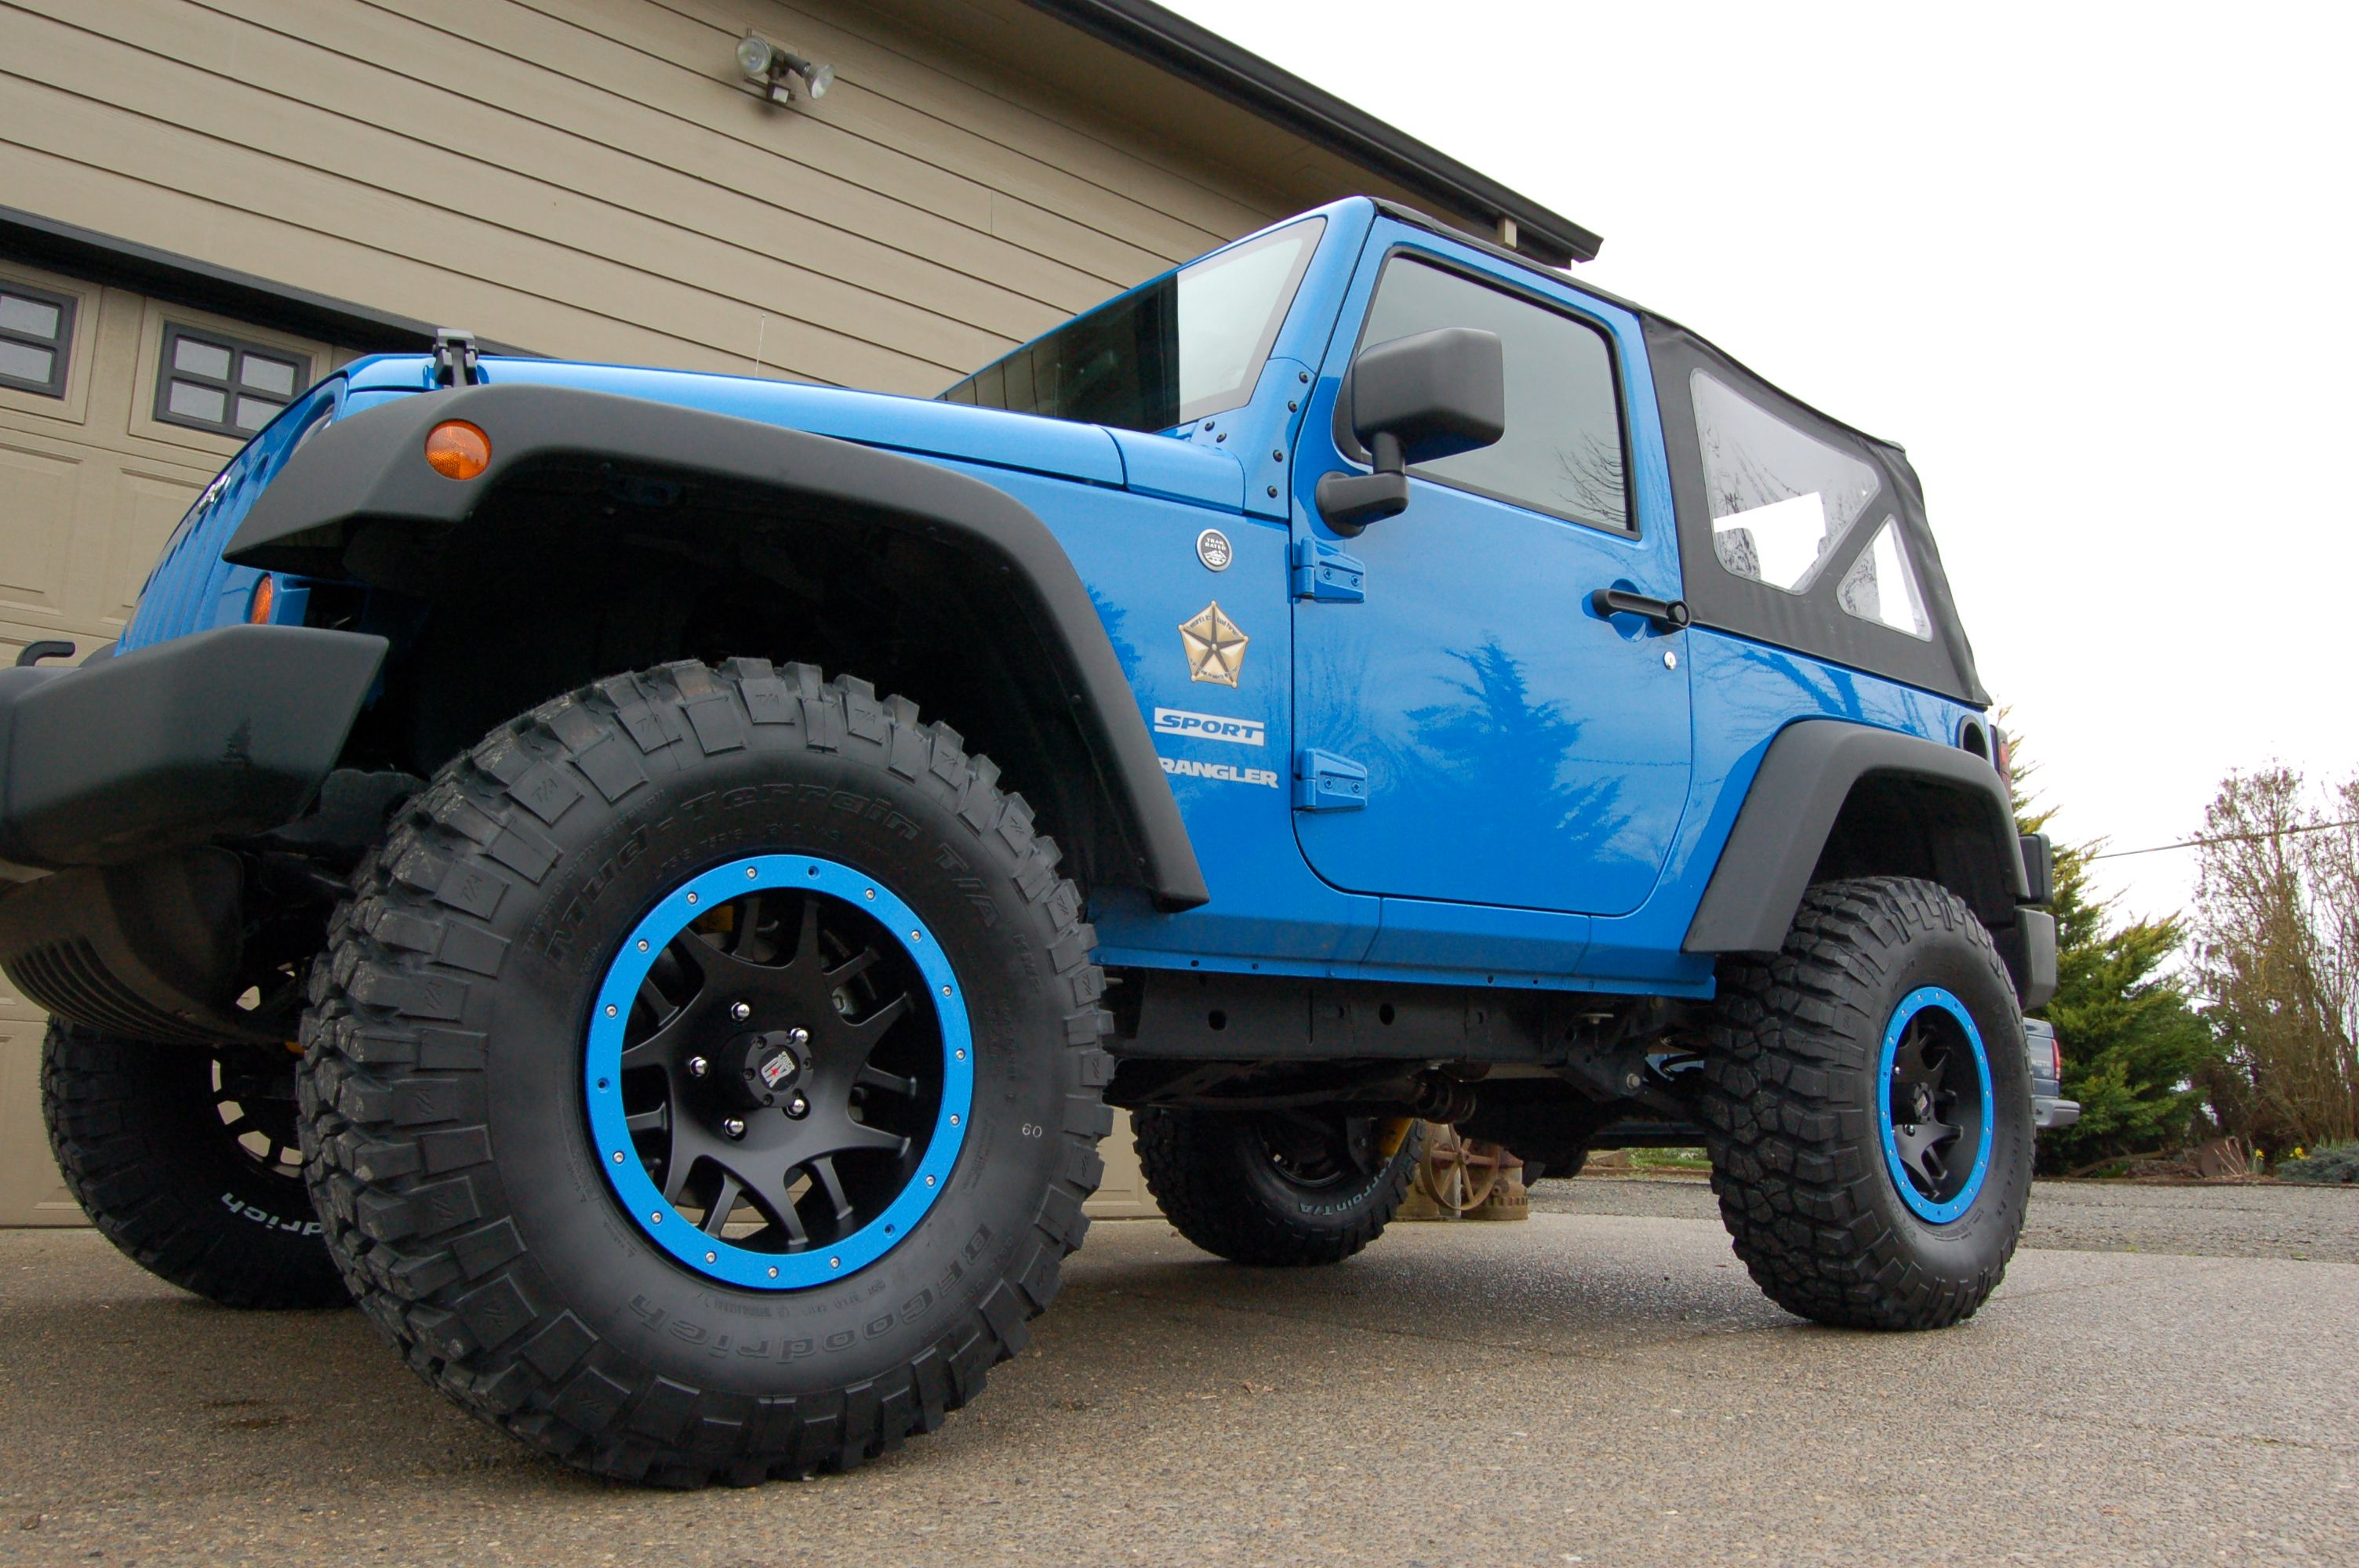 Pin By Kyle Jessel On Jeep Jeep Wrangler Jk Jeep Wrangler 2012